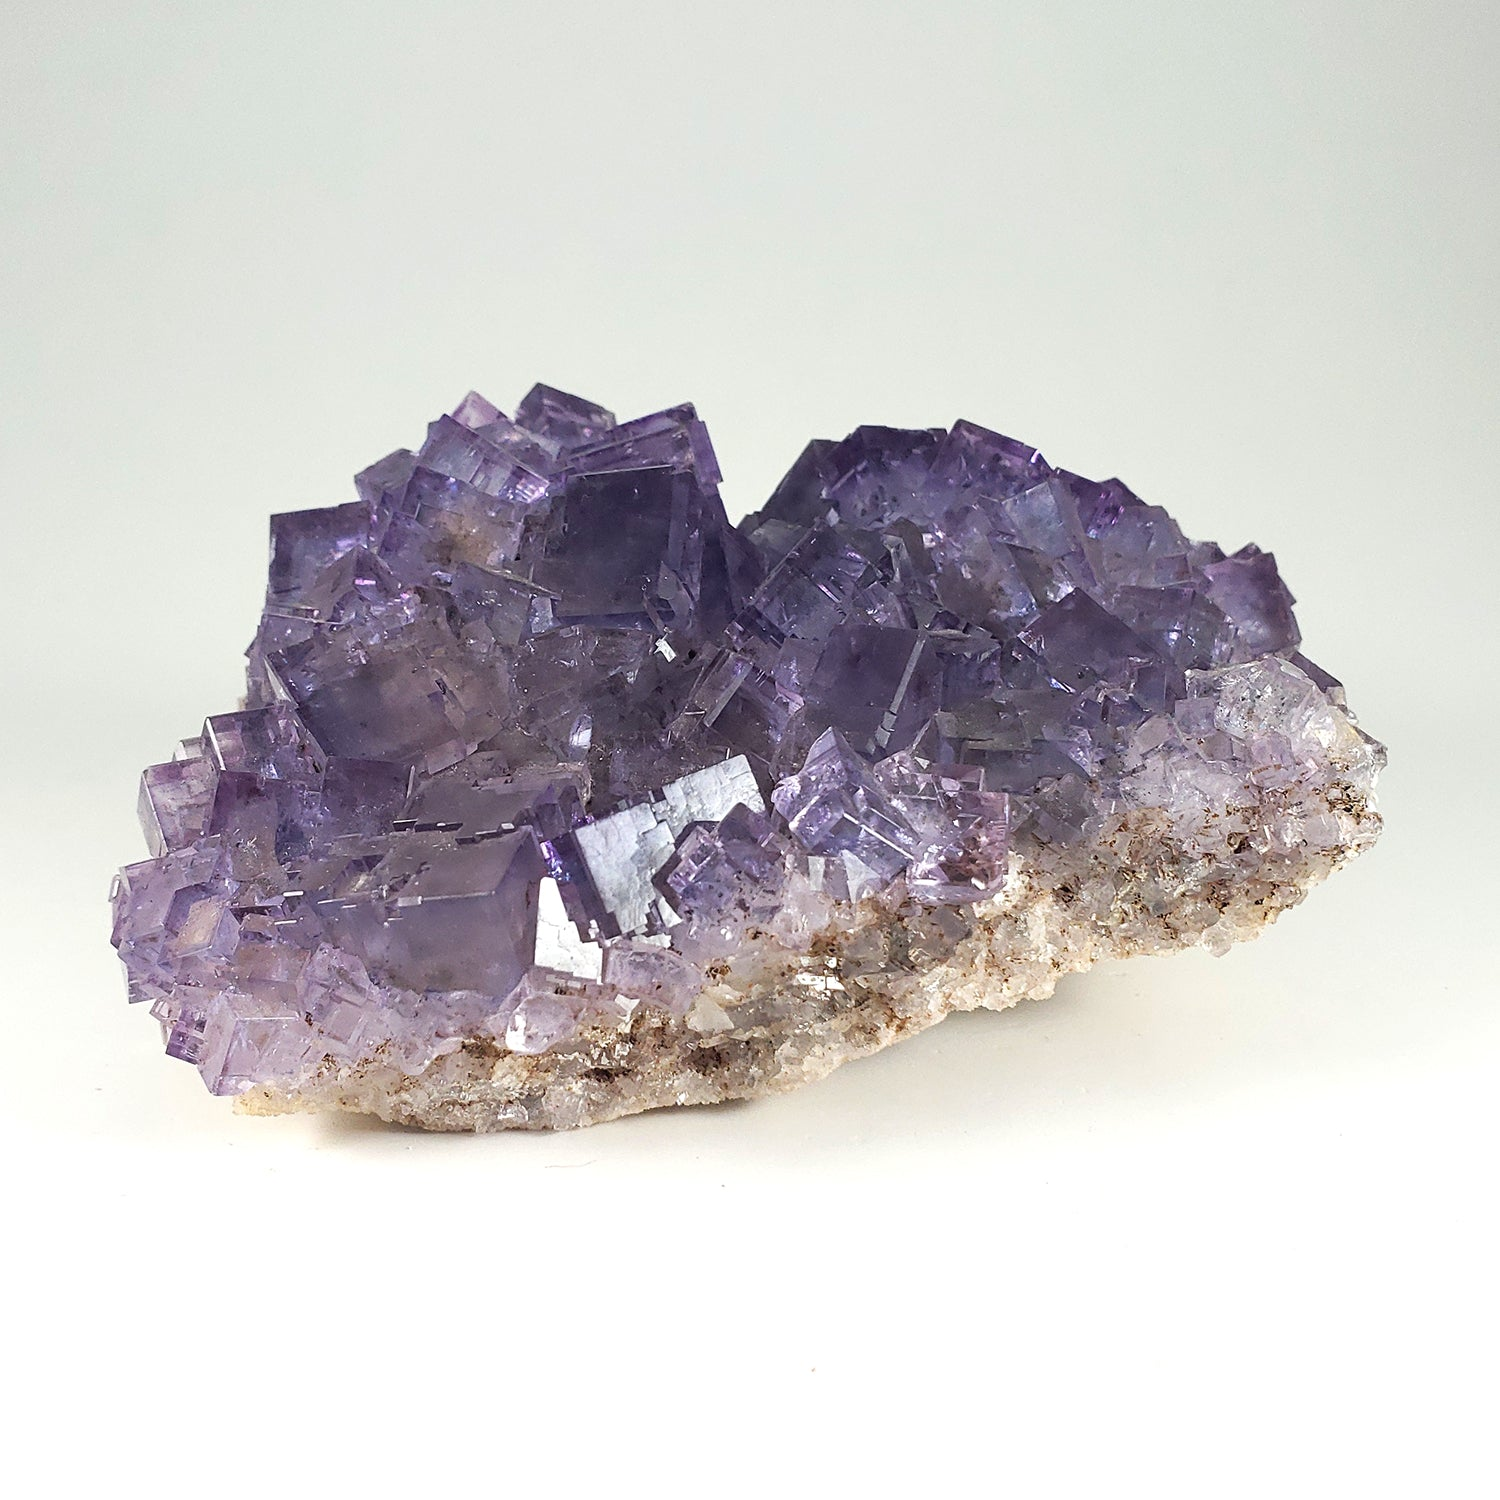 Cubic Purple Fluorite Specimen from Berbes Mining Area, Spain